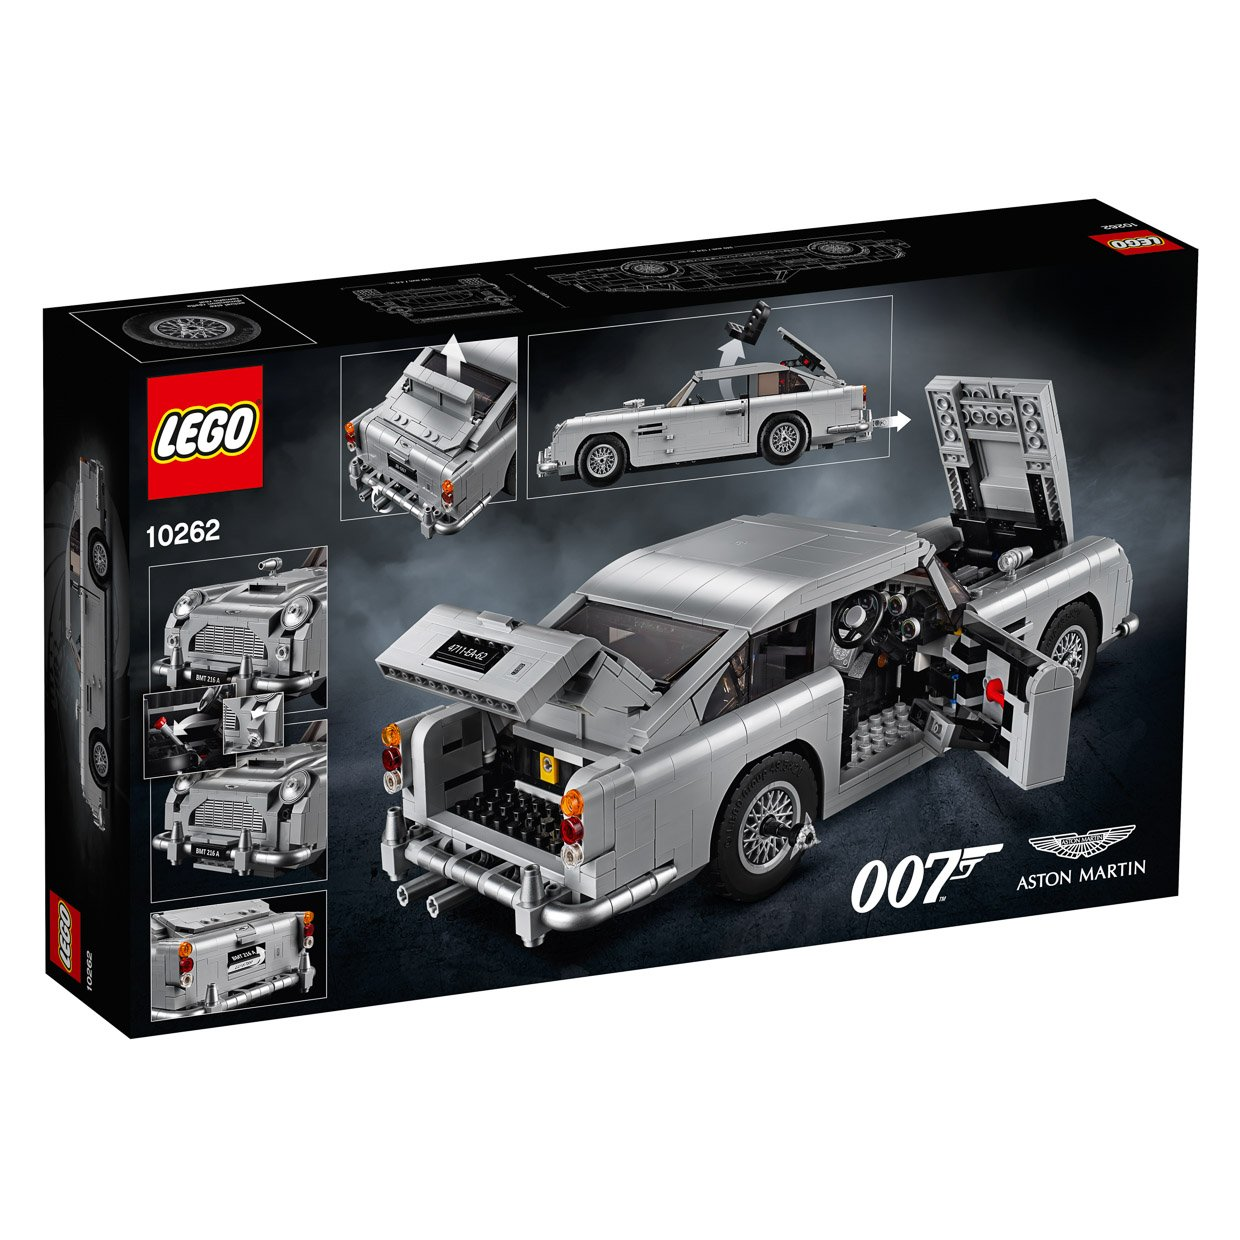 The Official LEGO James Bond Aston Martin DB5 Looks Fantastic